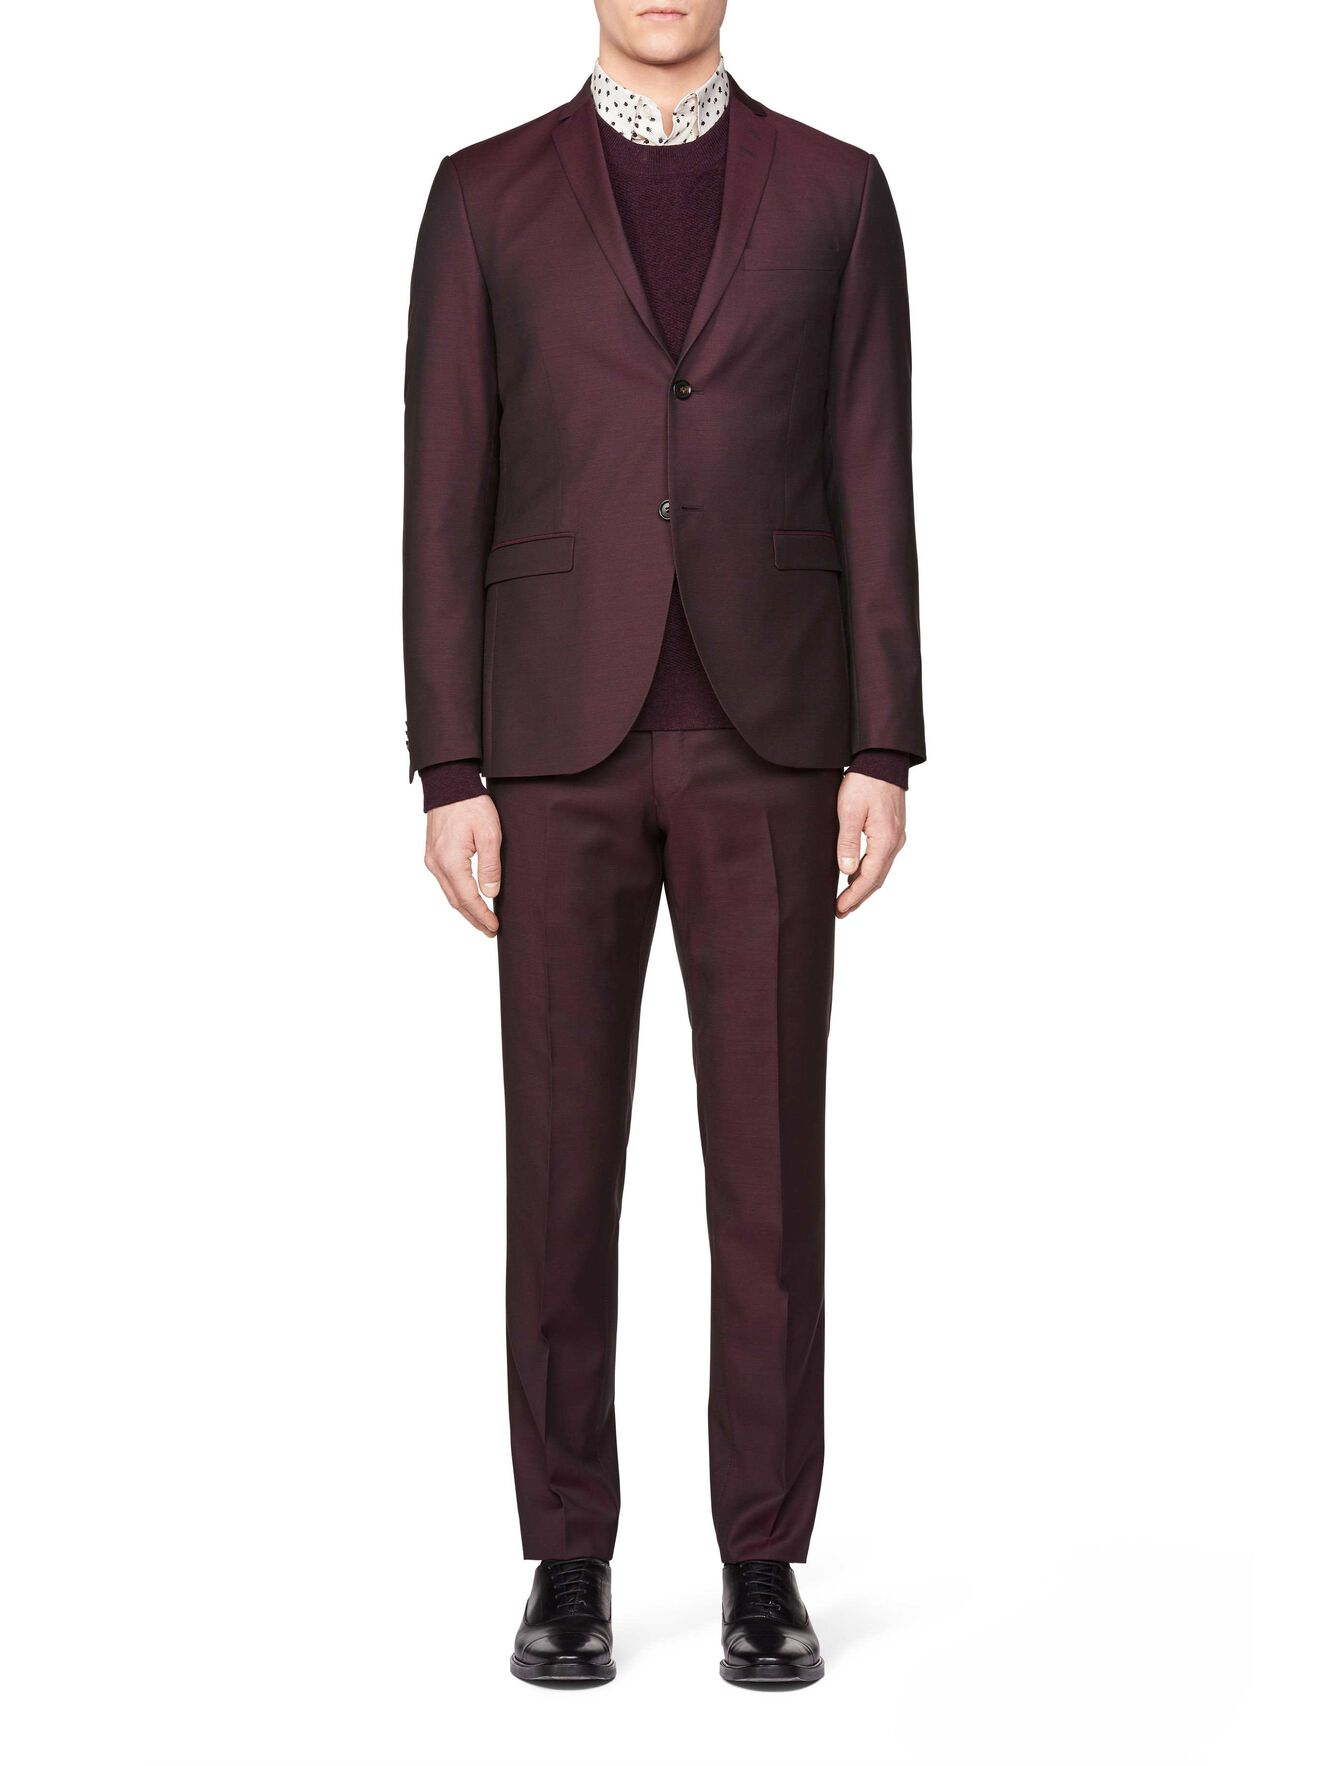 Jil 8 Suit in Dark Heather from Tiger of Sweden